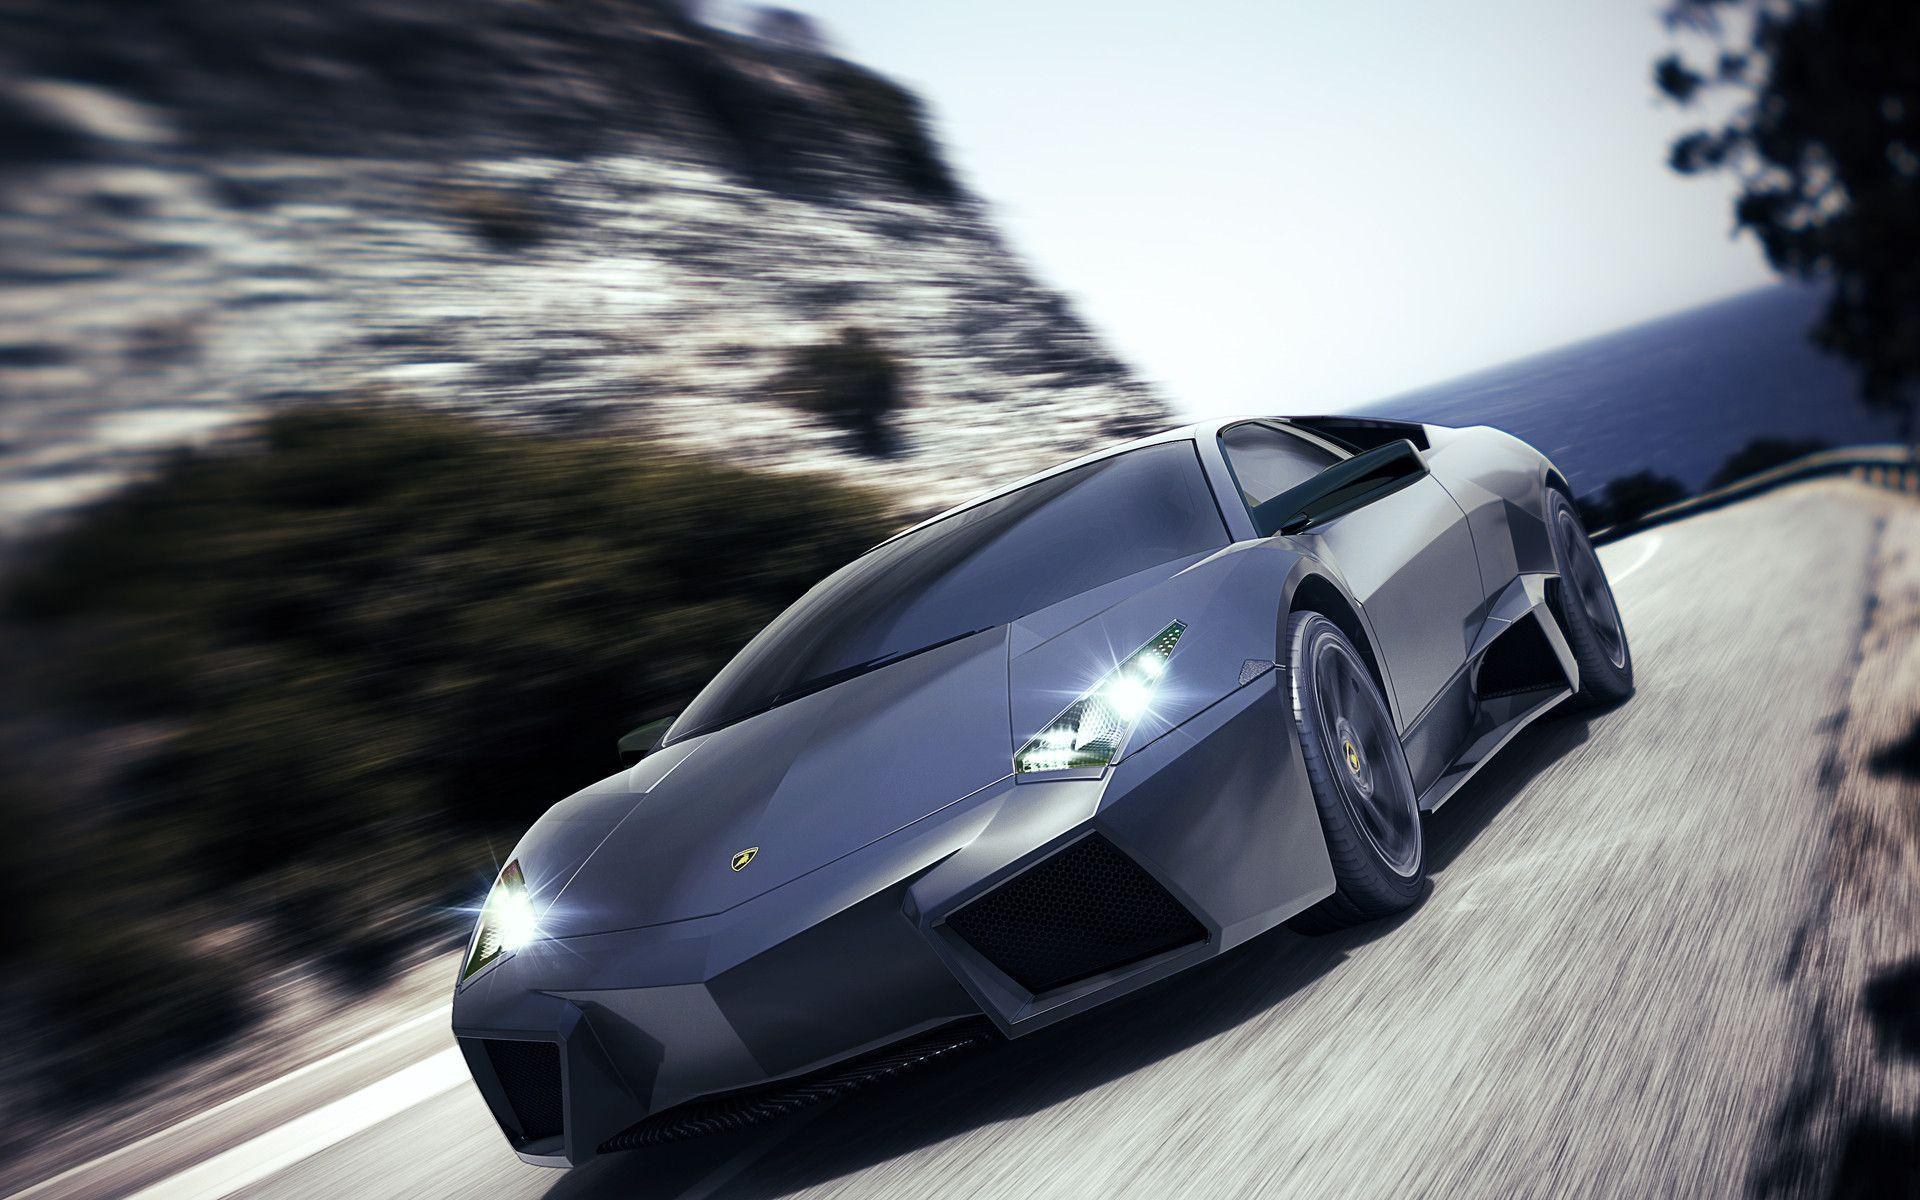 Wallpapers Of Lamborghini Car Wallpaper Cave